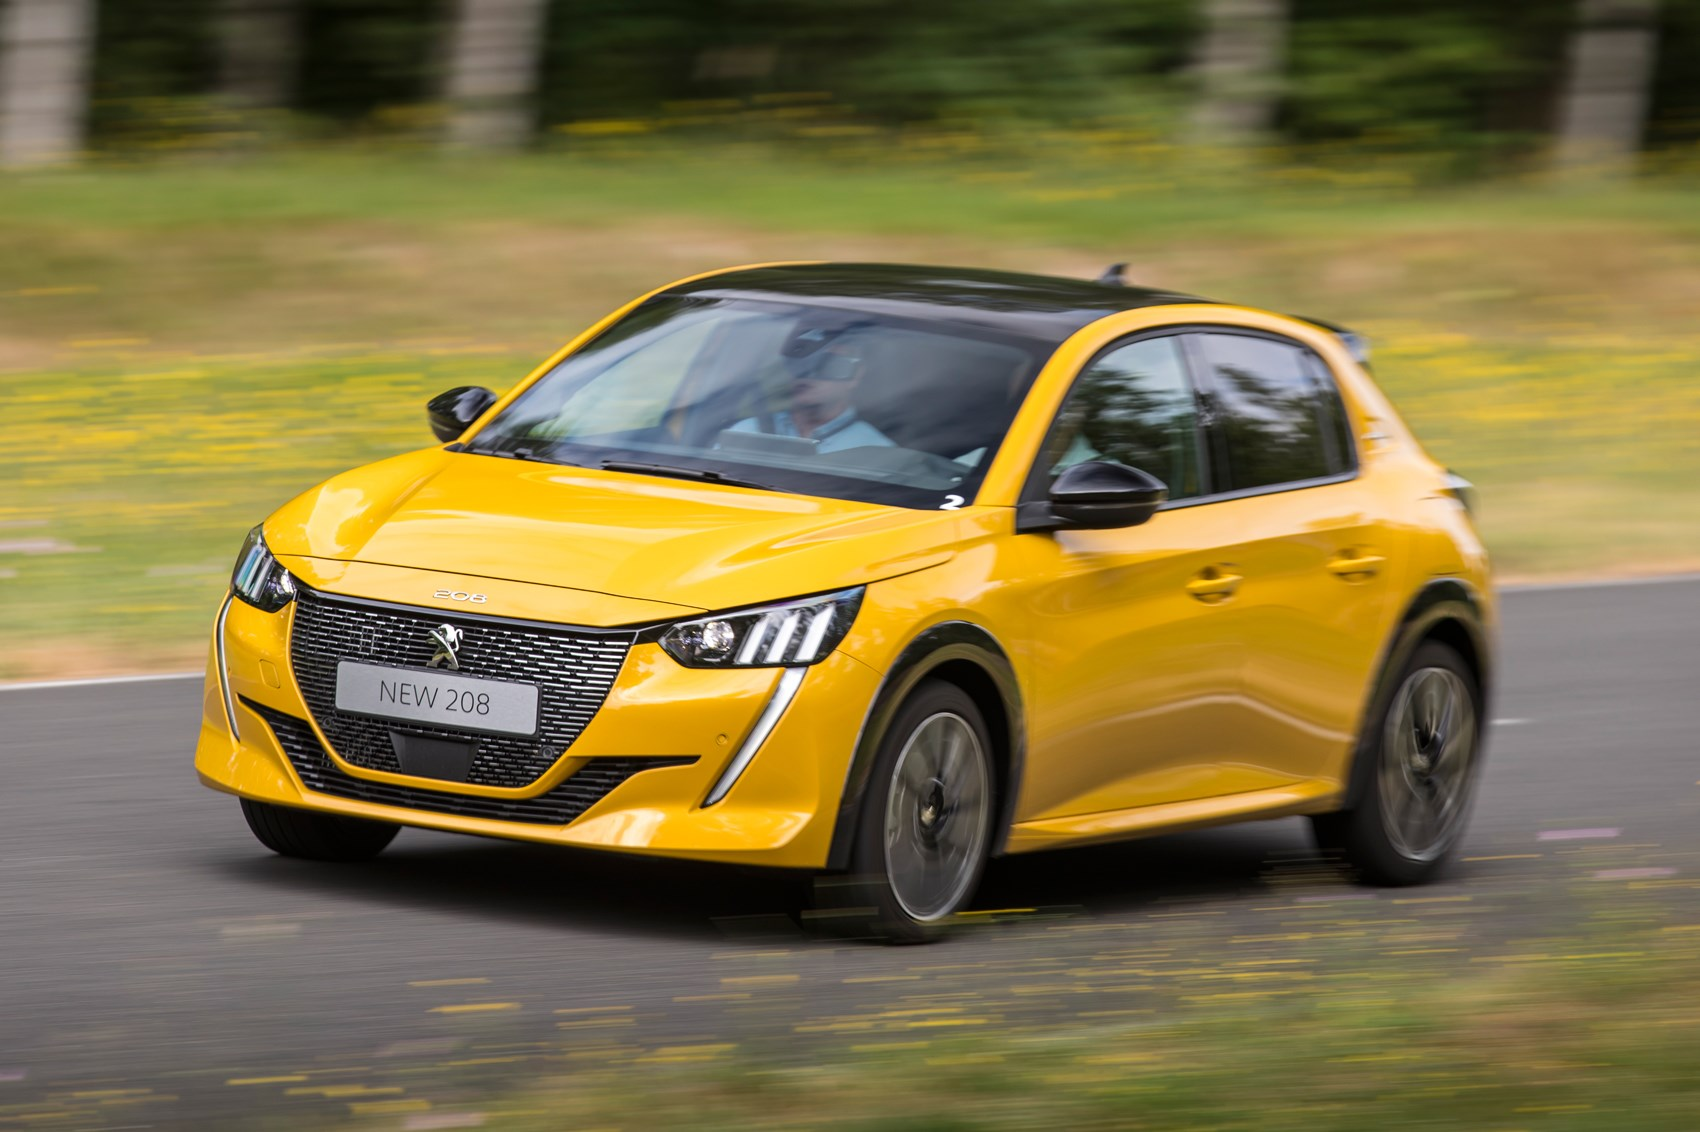 Chevrolet Lease Deals >> Peugeot 208 prototype (2020) review: shaping up nicely | CAR Magazine